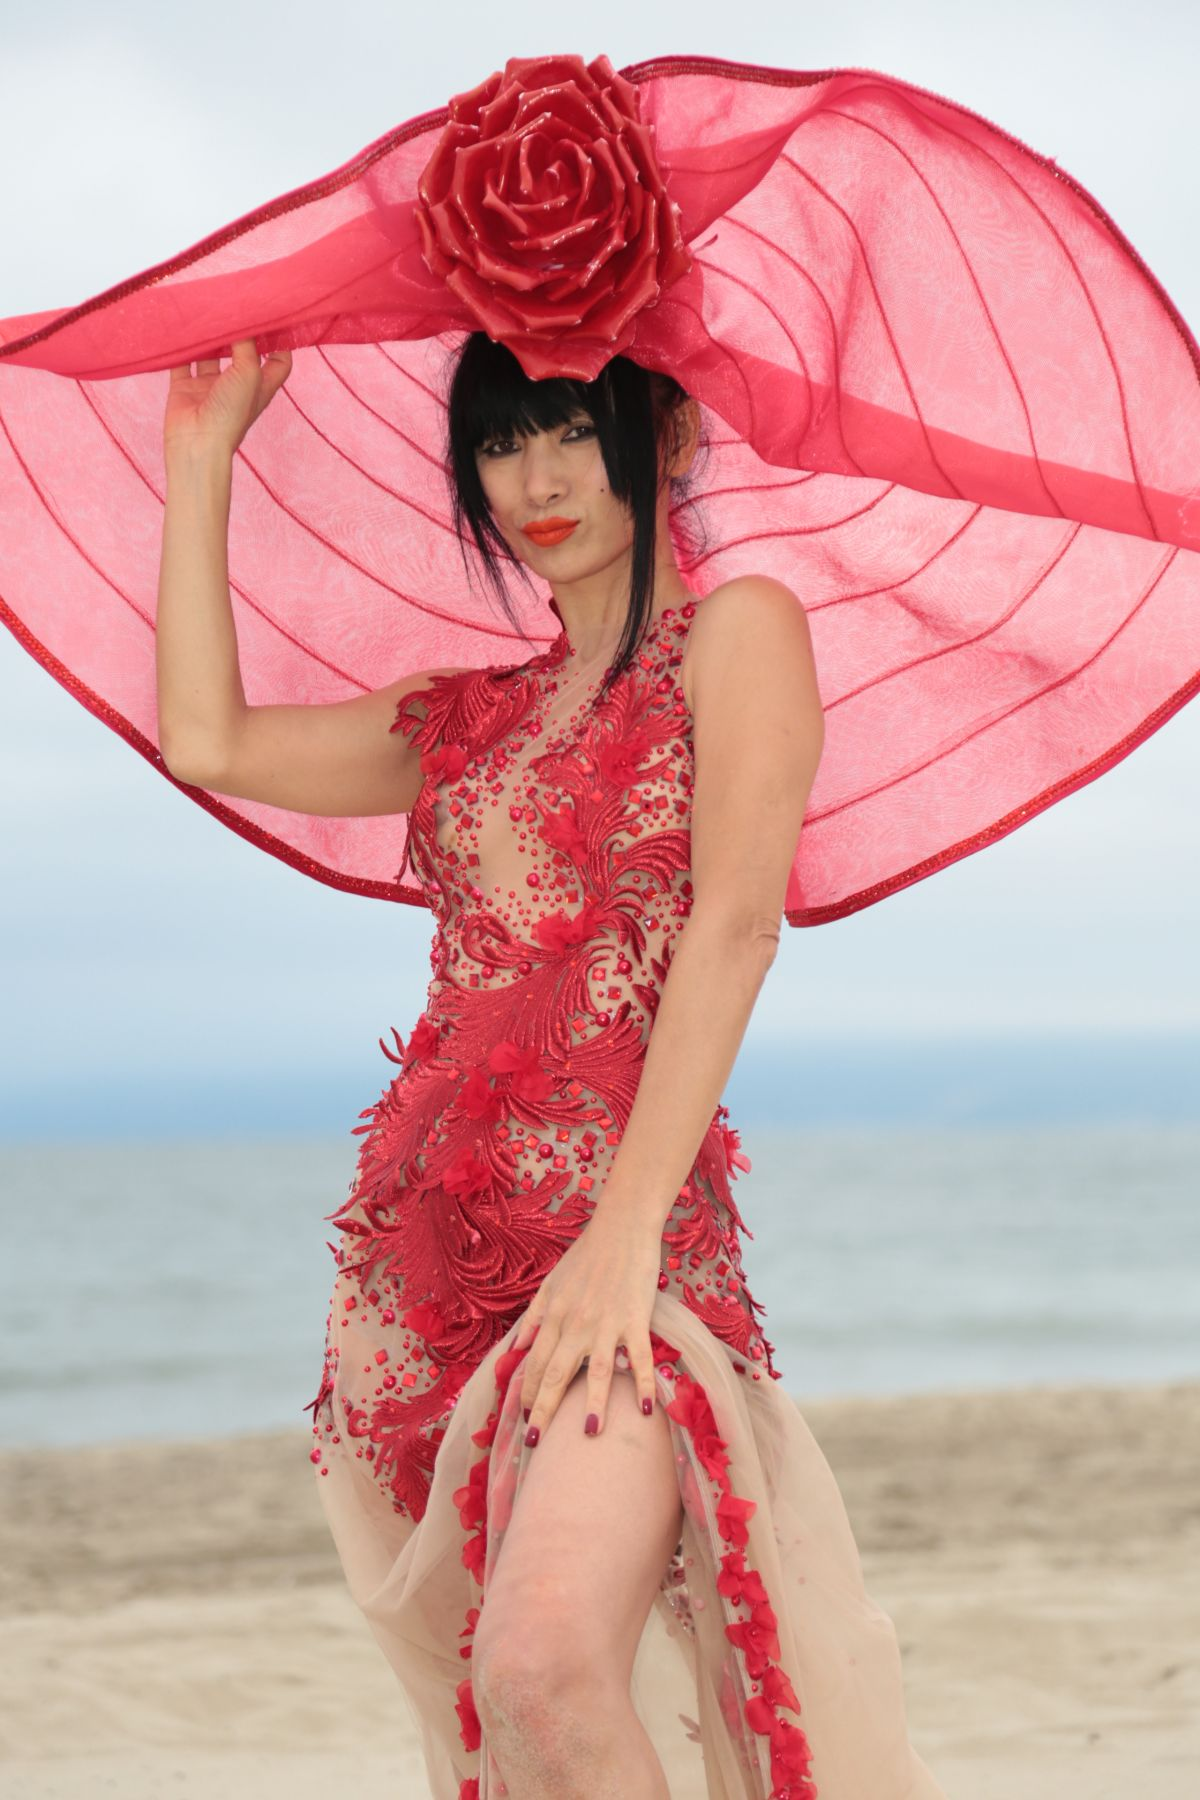 Bai Ling Poses for photoshoot in Marina Del Rey